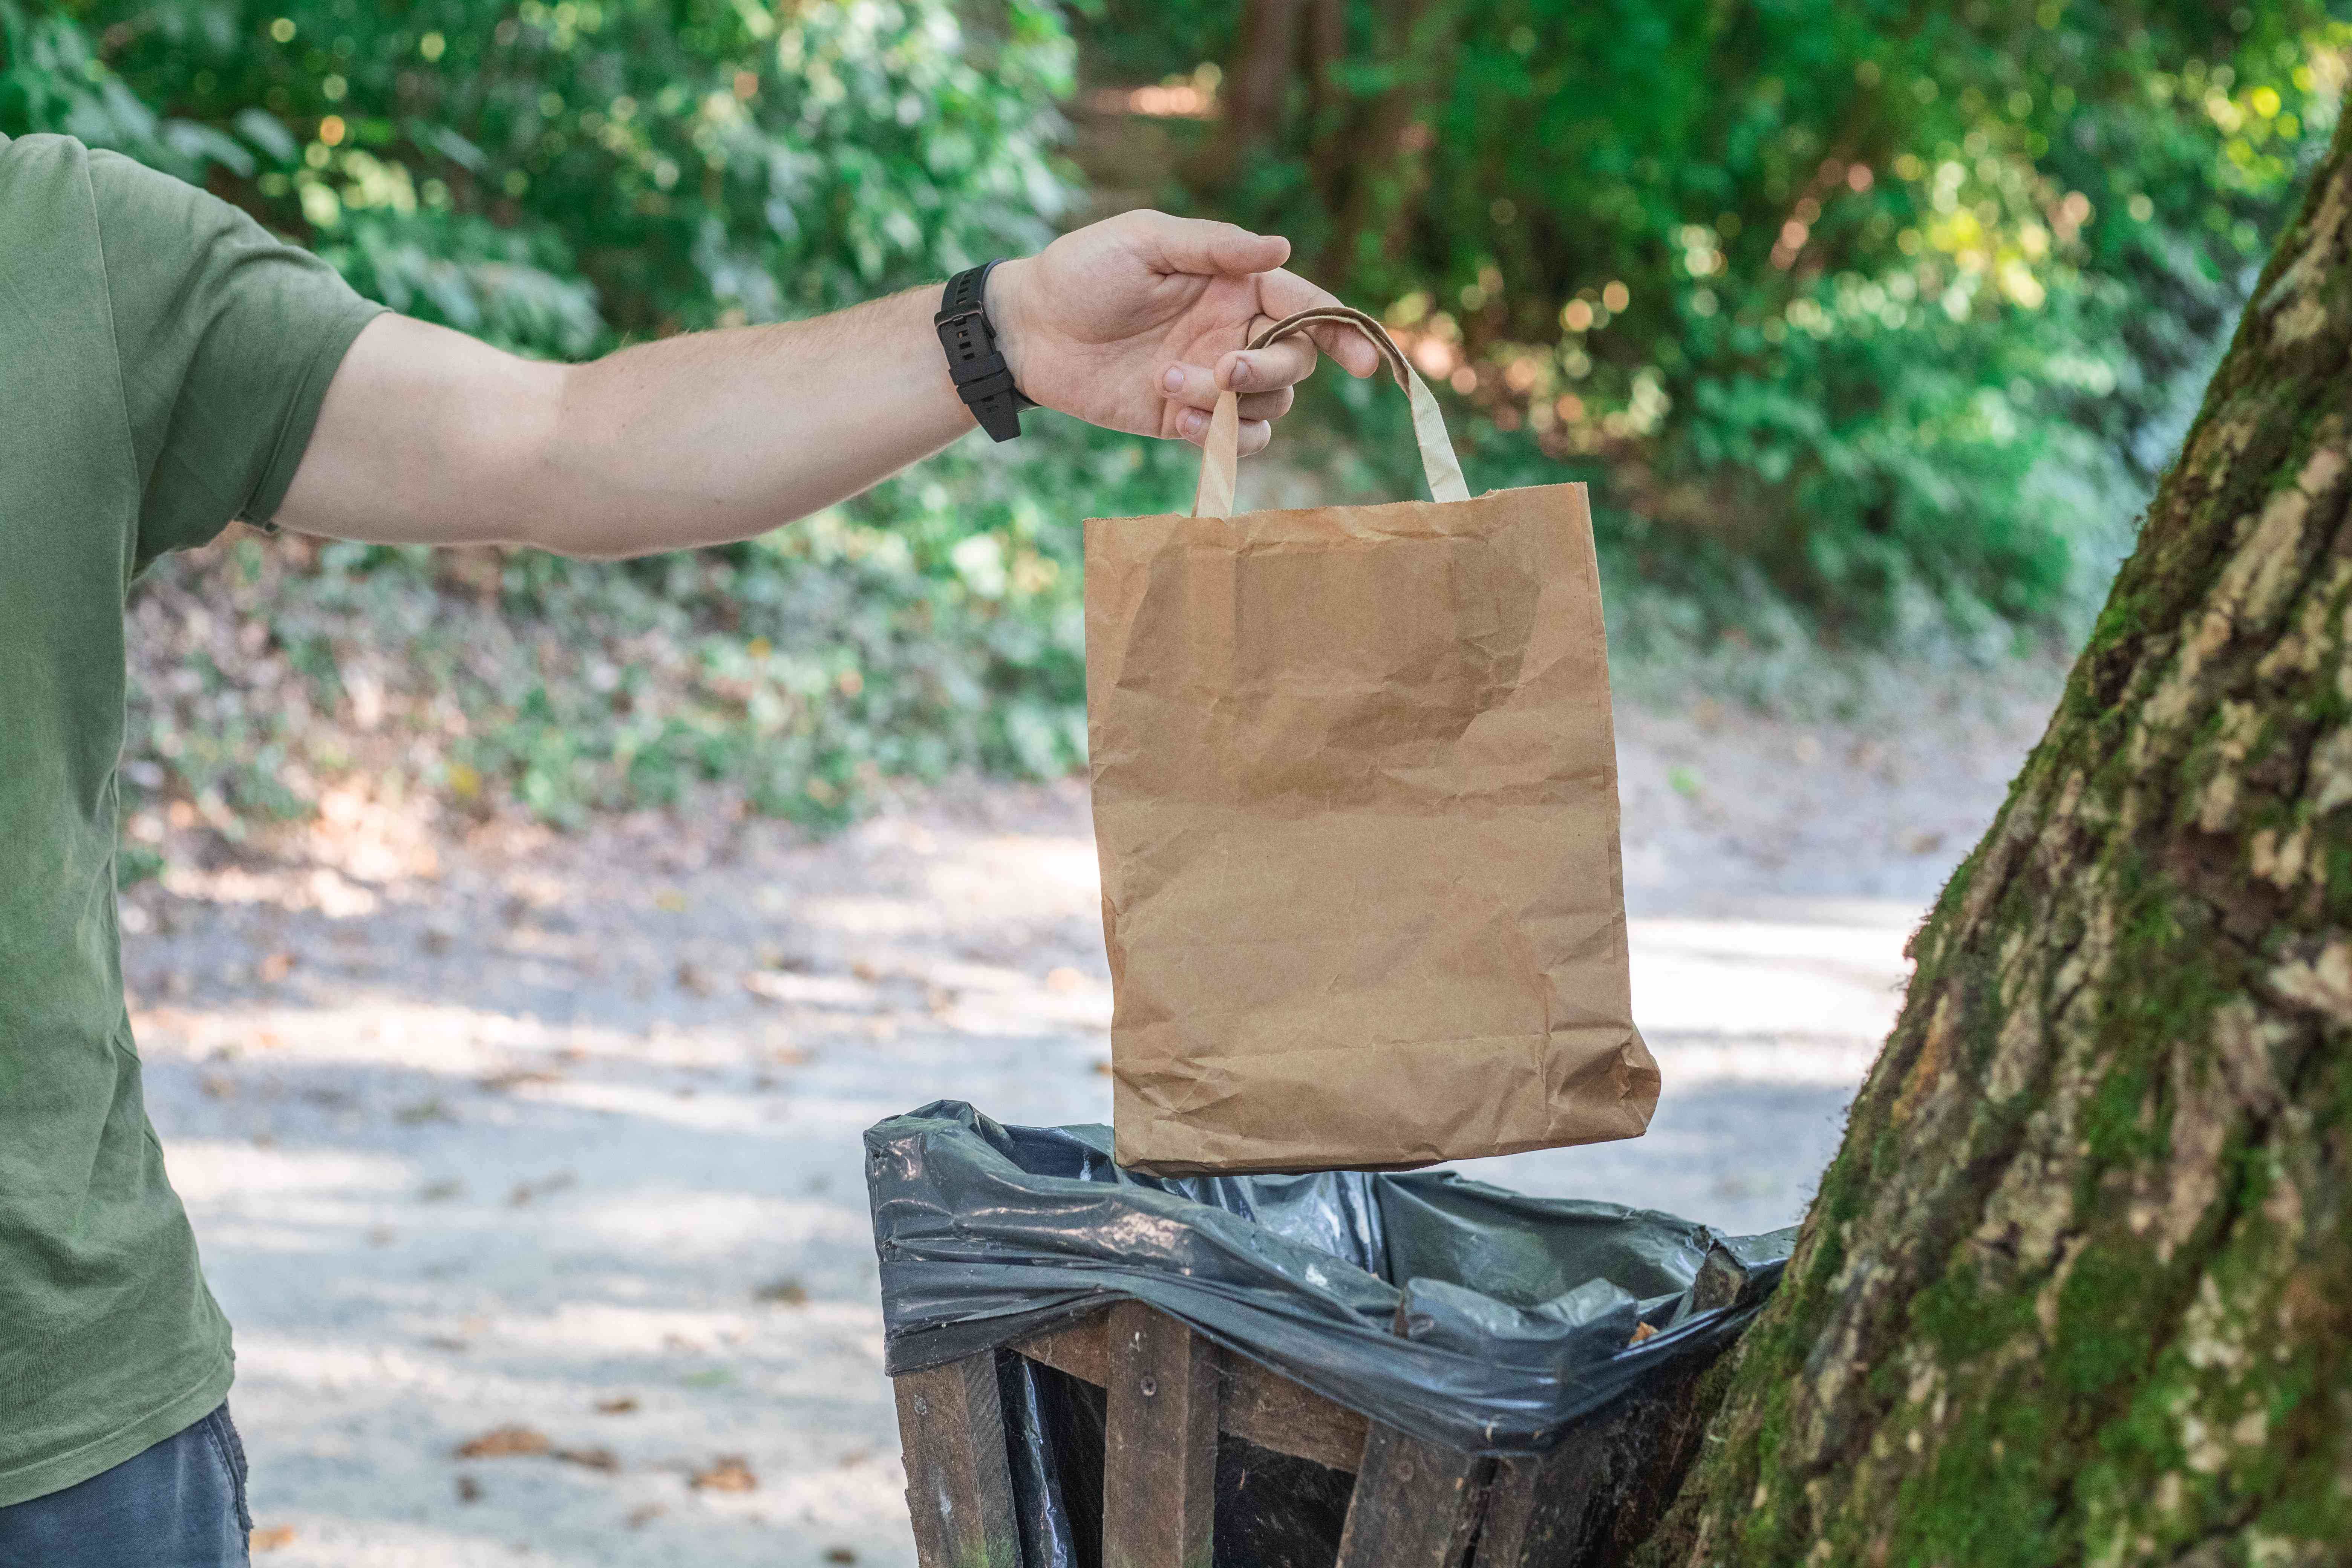 person disposes of brown paper bag in outdoor trashcan to avoid littering